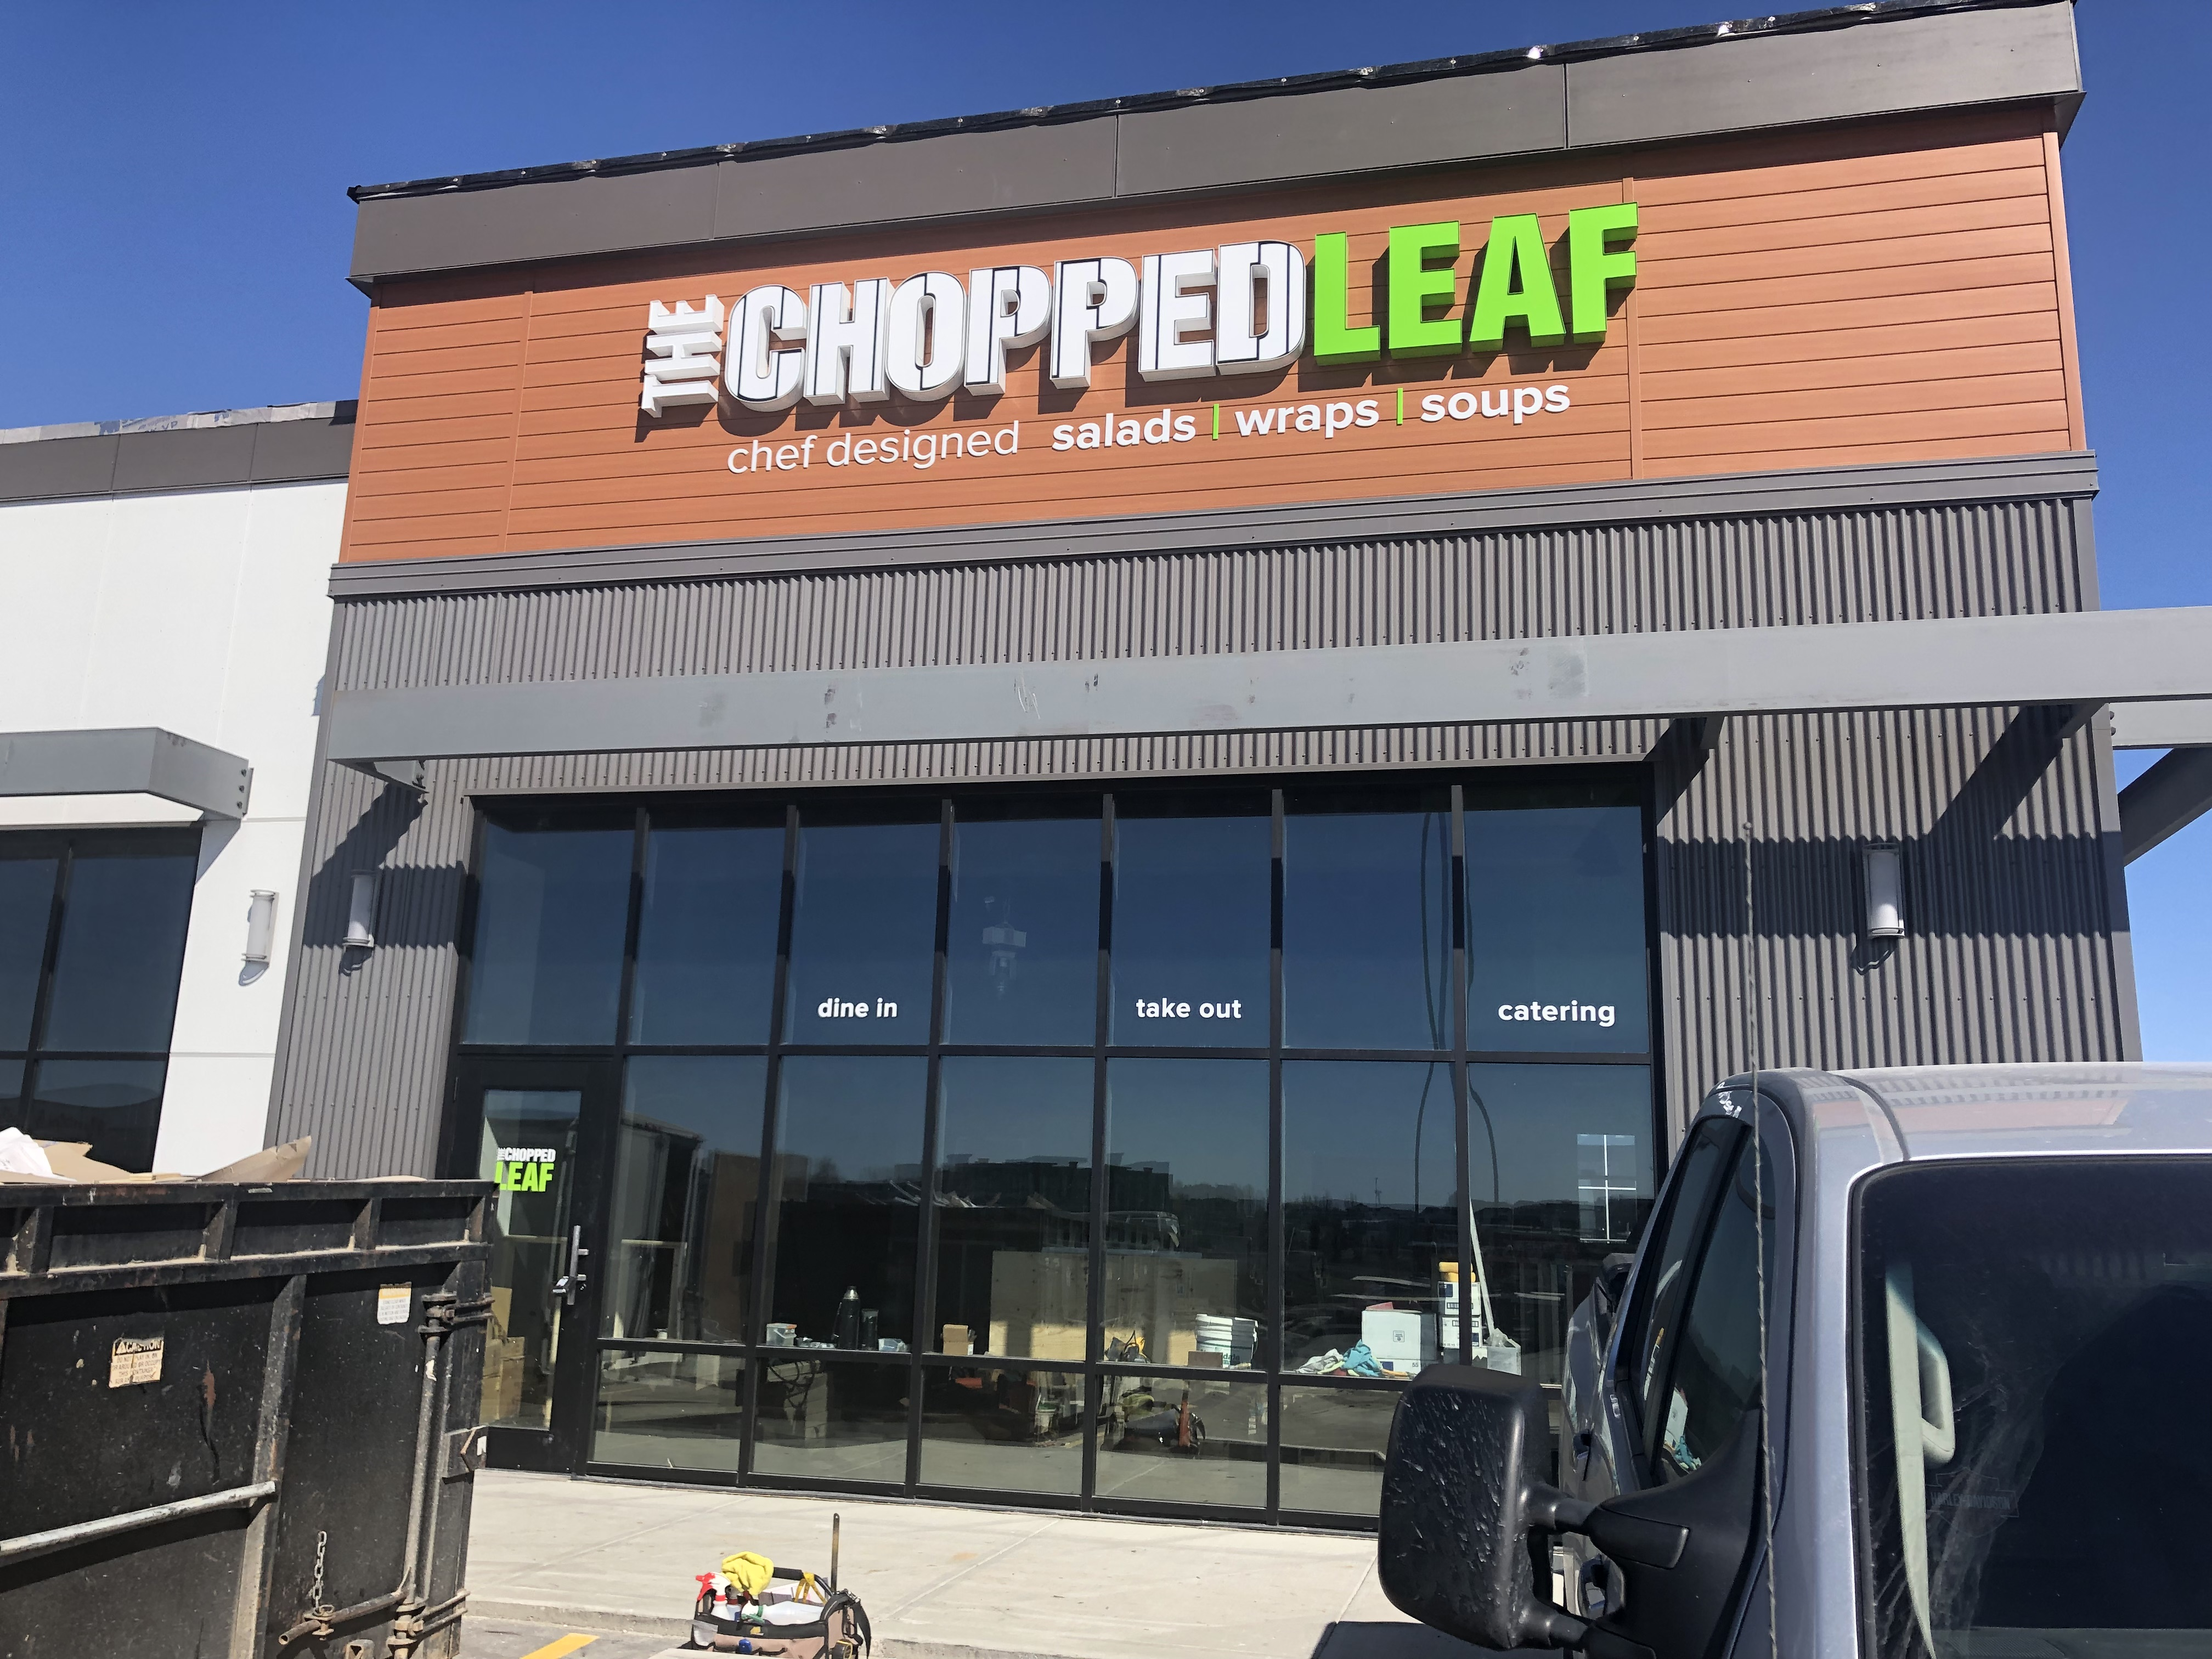 Installed The chopped Leaf signage